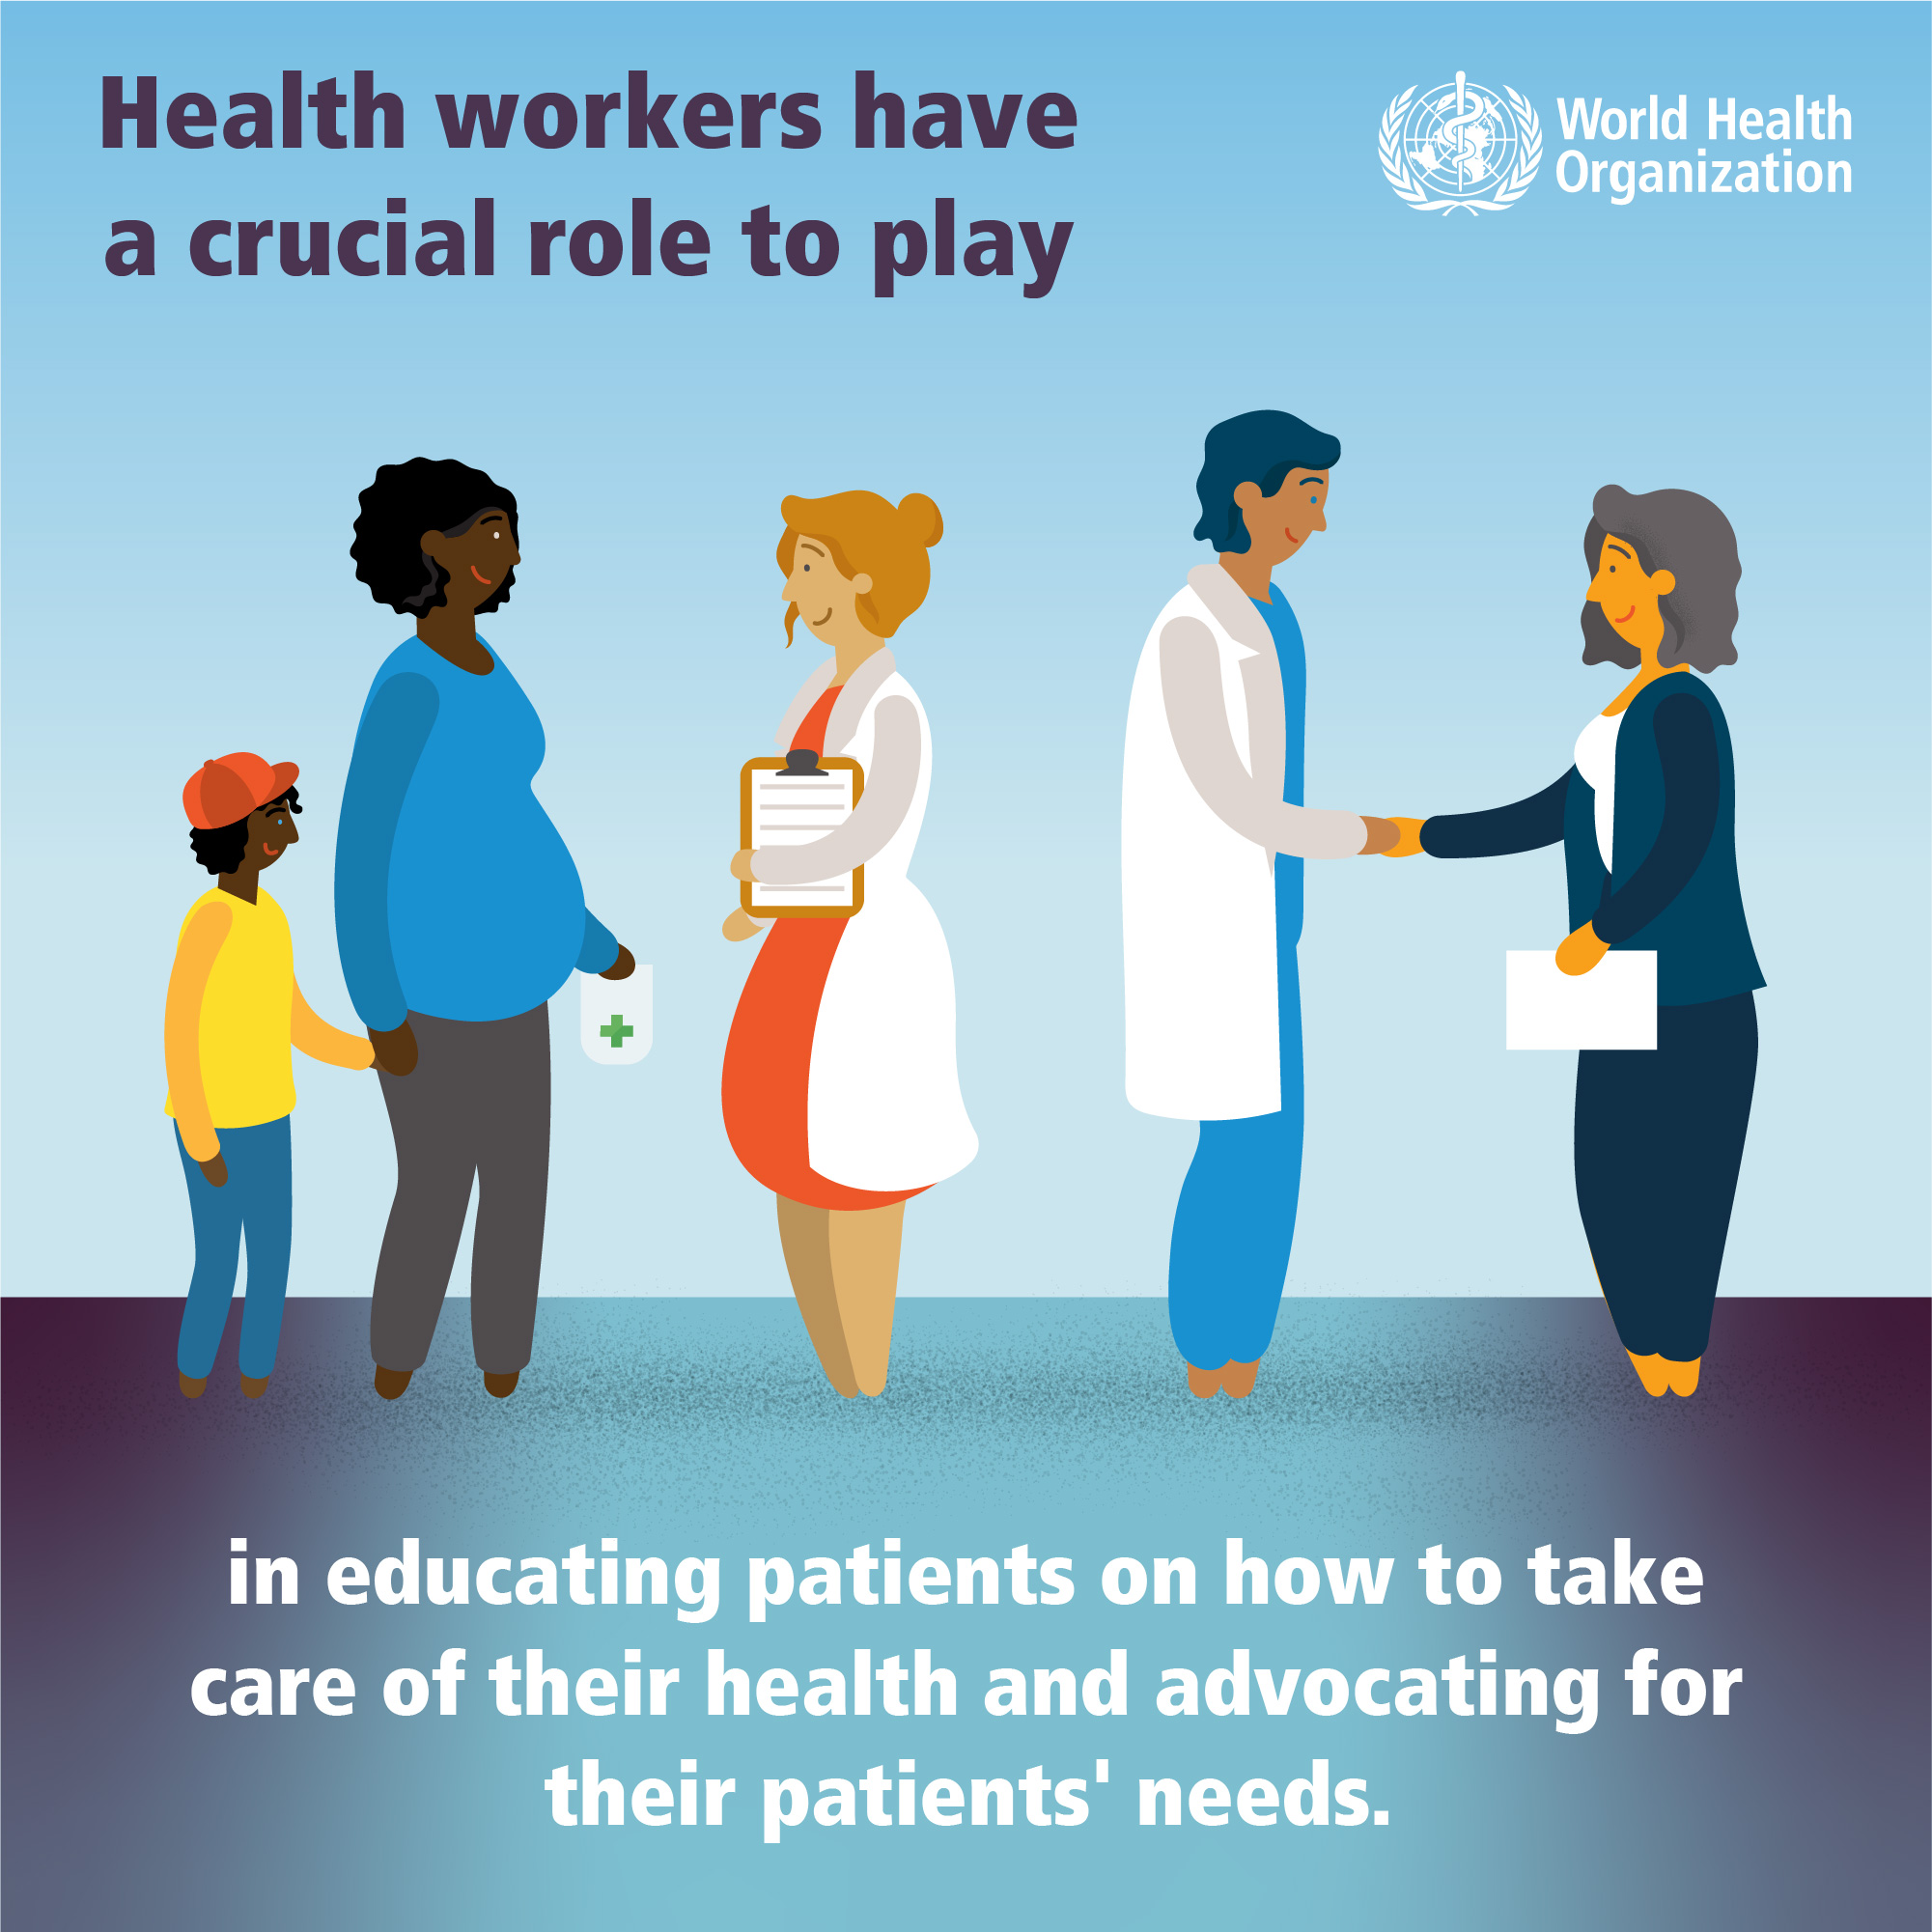 Health workers role in educating patients (Source: WHO)